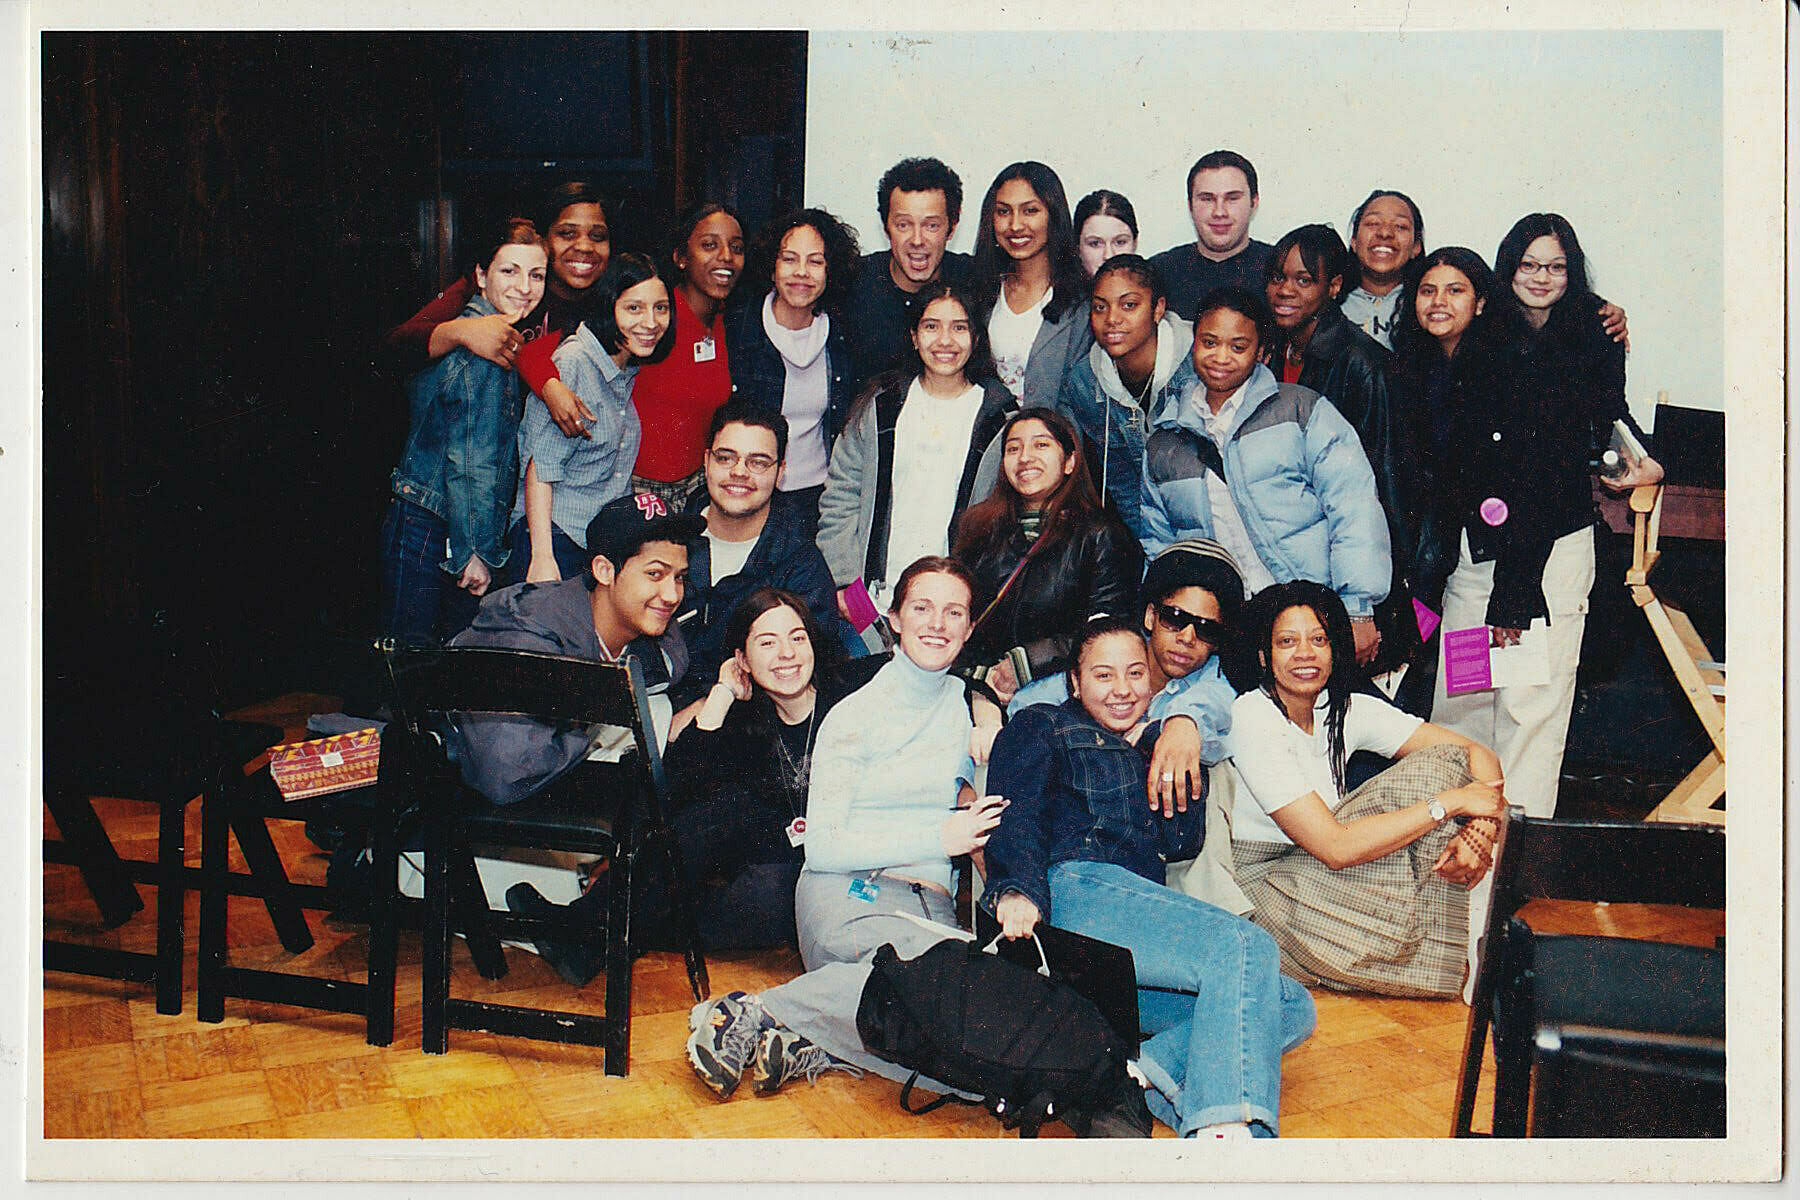 Group photo of Youth Insight Participants at the Whitney Museum in 2000-2001.